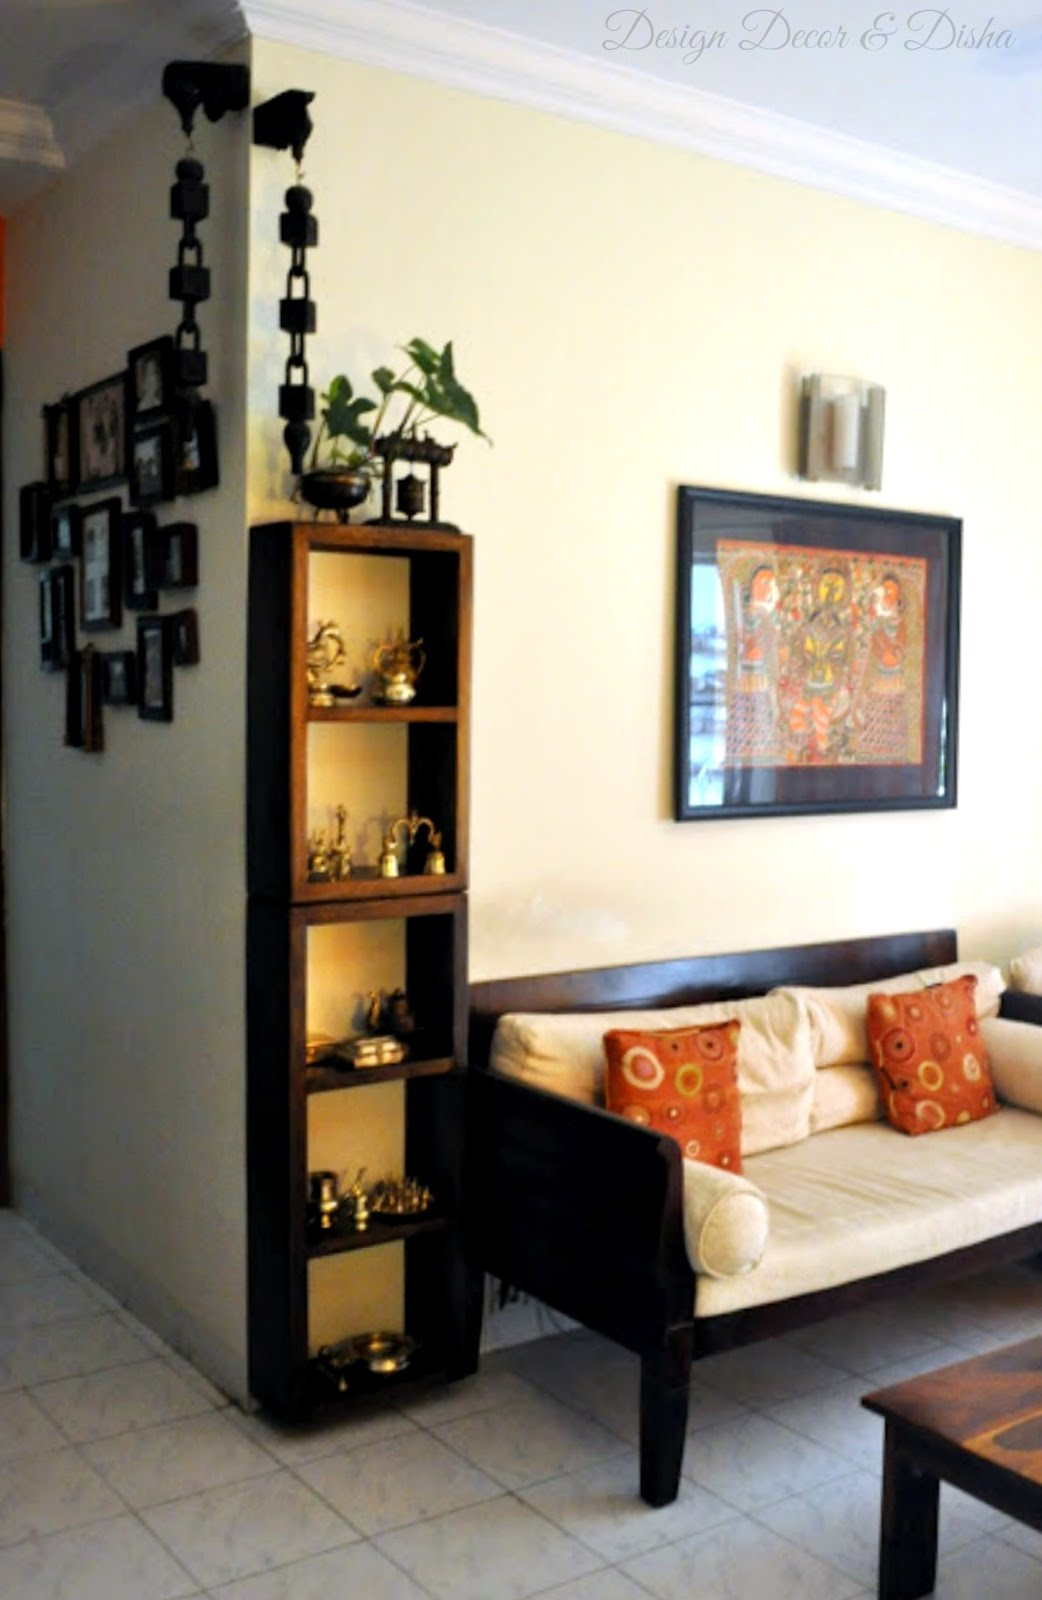 Design Decor Disha An Indian Design Decor Blog Home Tour Padmamanasa Jwalaniah